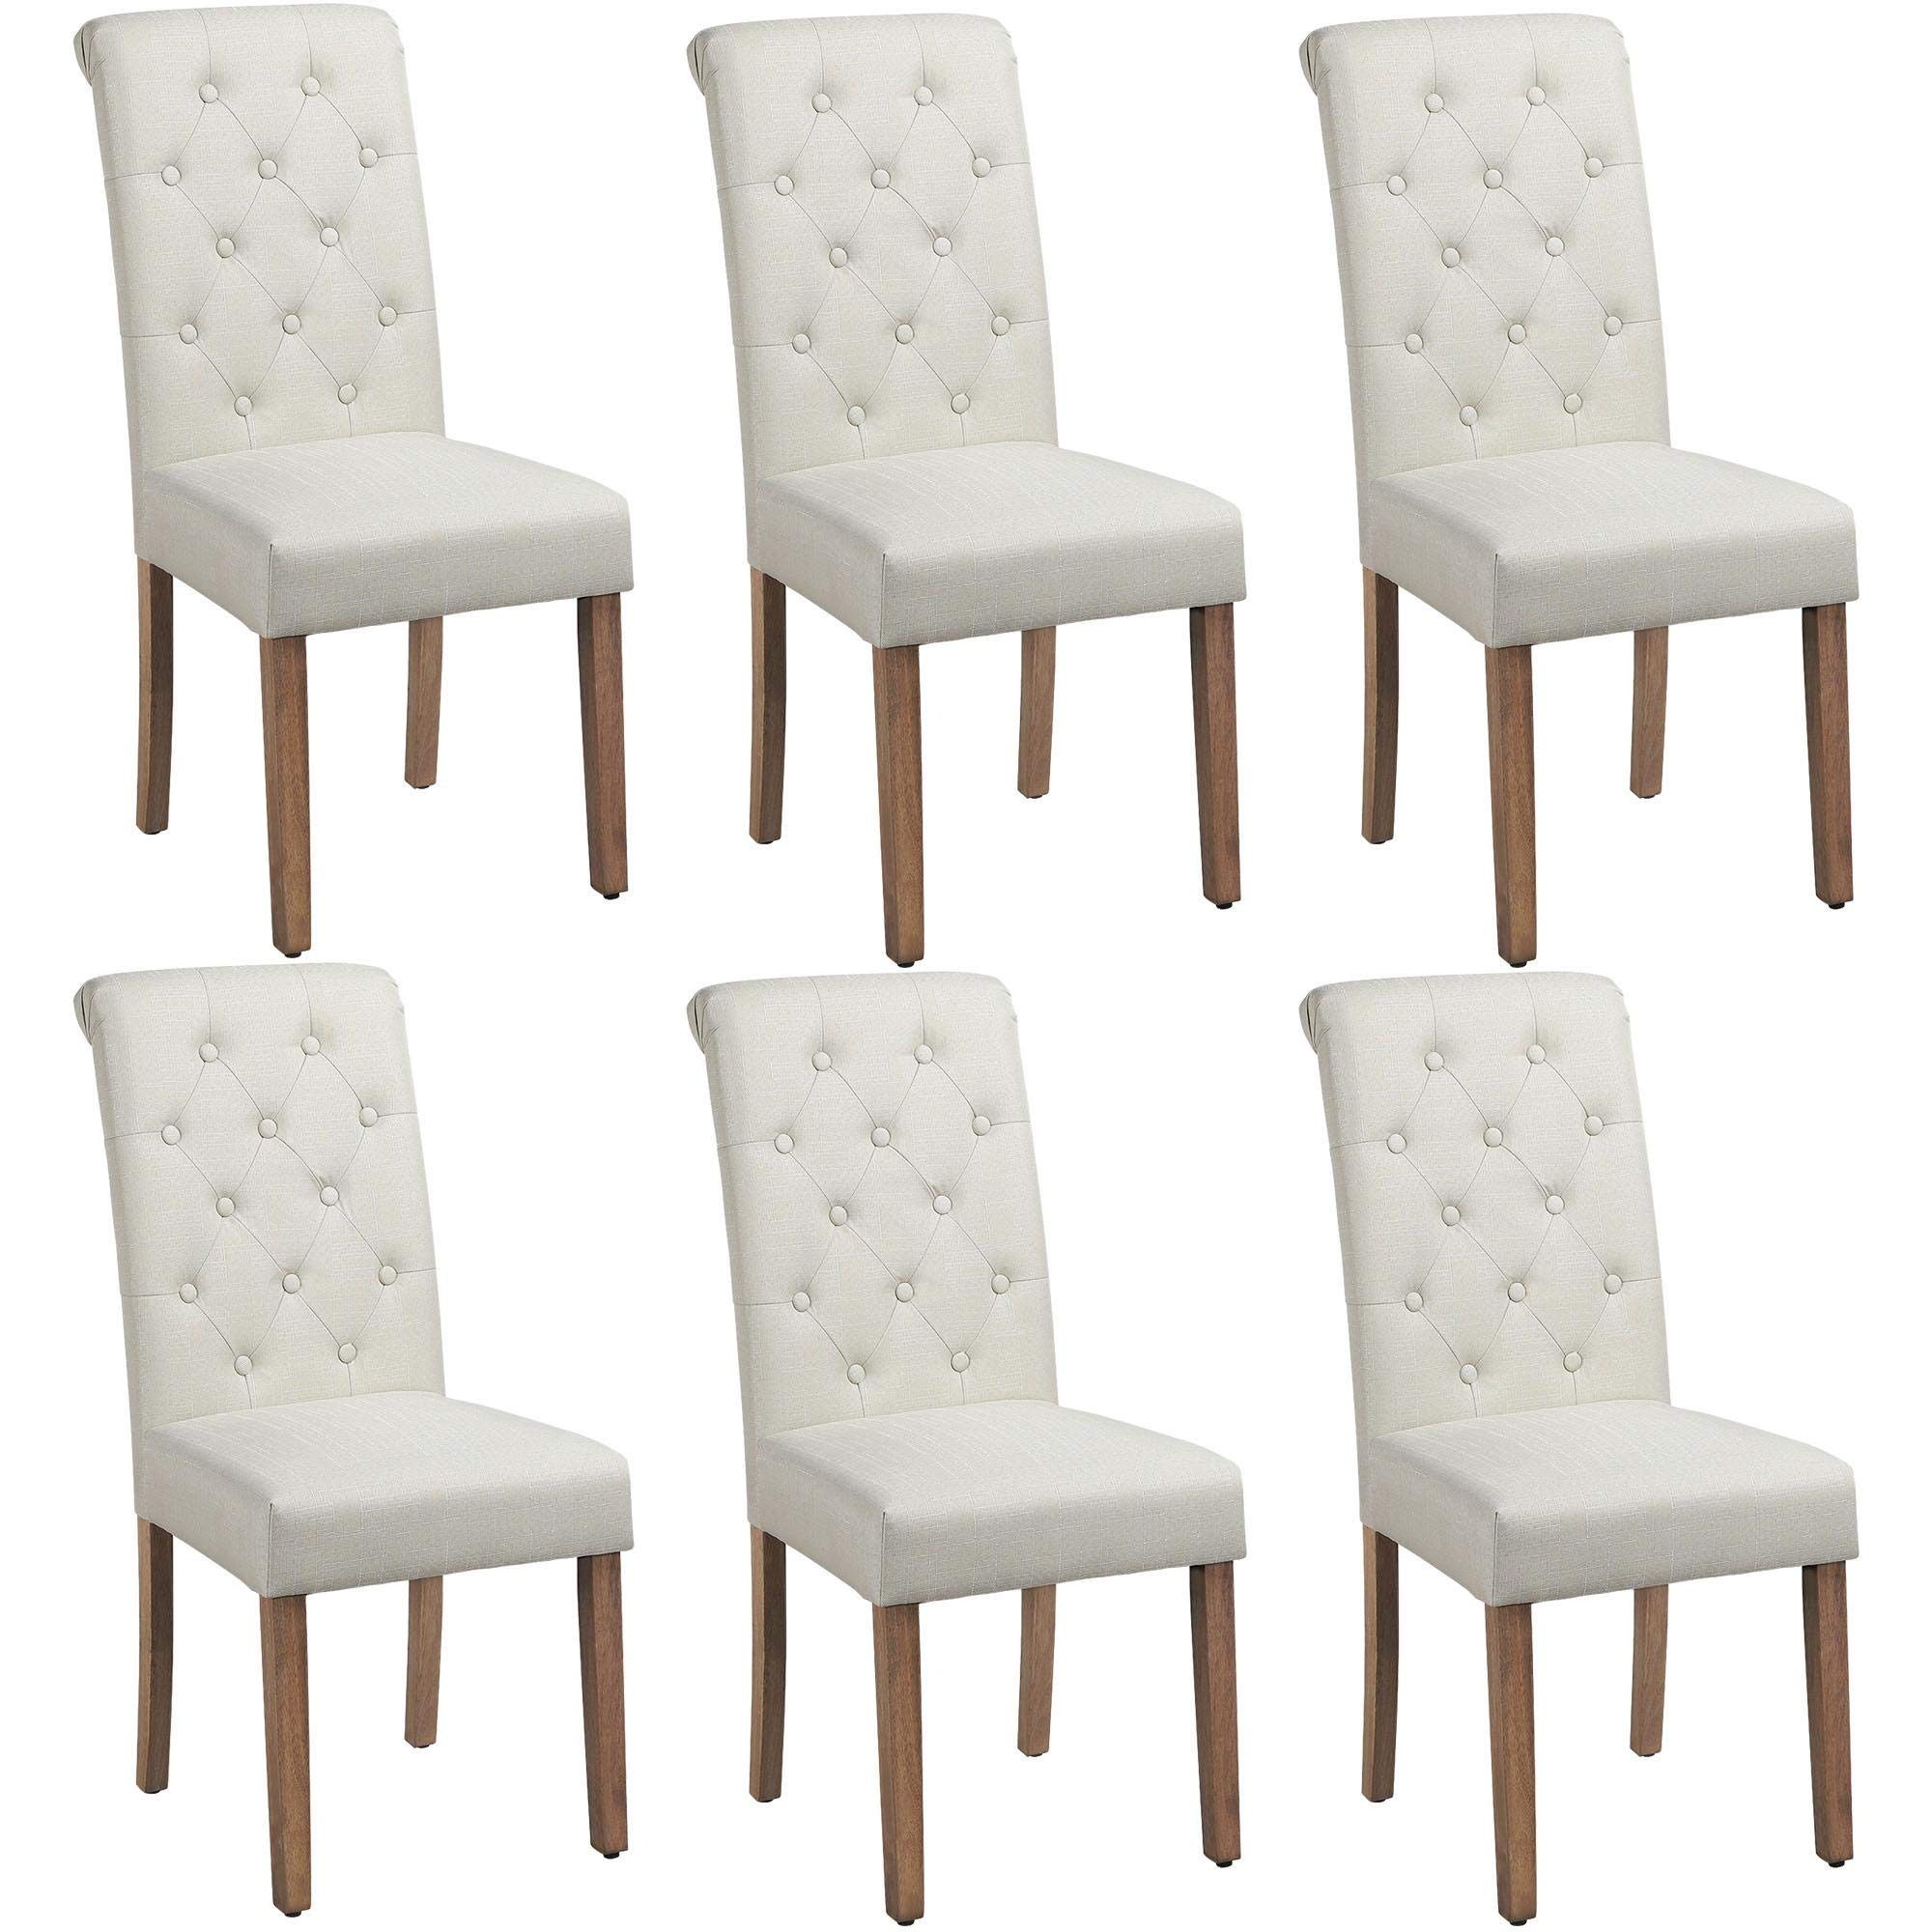 Yaheetech Solid Wood Dining Chairs Button Tufted Parsons Diner Chair Upholstered Fabric Dining Room Chairs Kitchen Chairs Set Of 6 Beige Buy Online In Dominica At Dominica Desertcart Com Productid 203020874